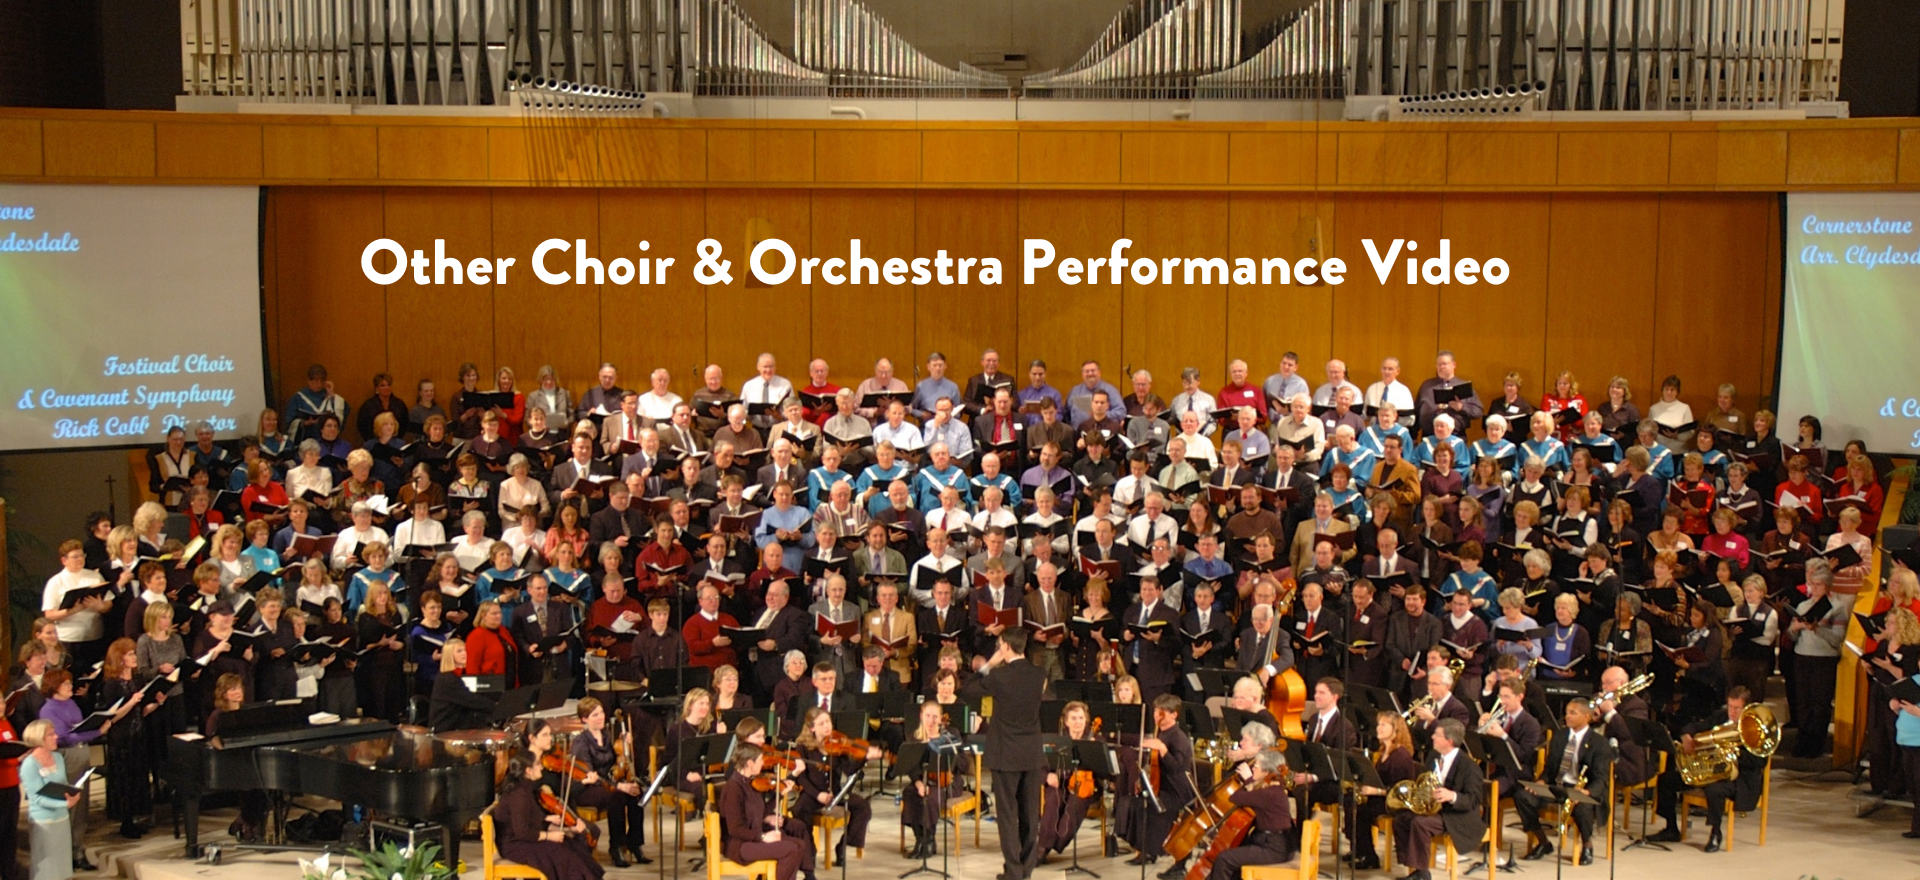 Other Choir & Orchestra Performance Vide